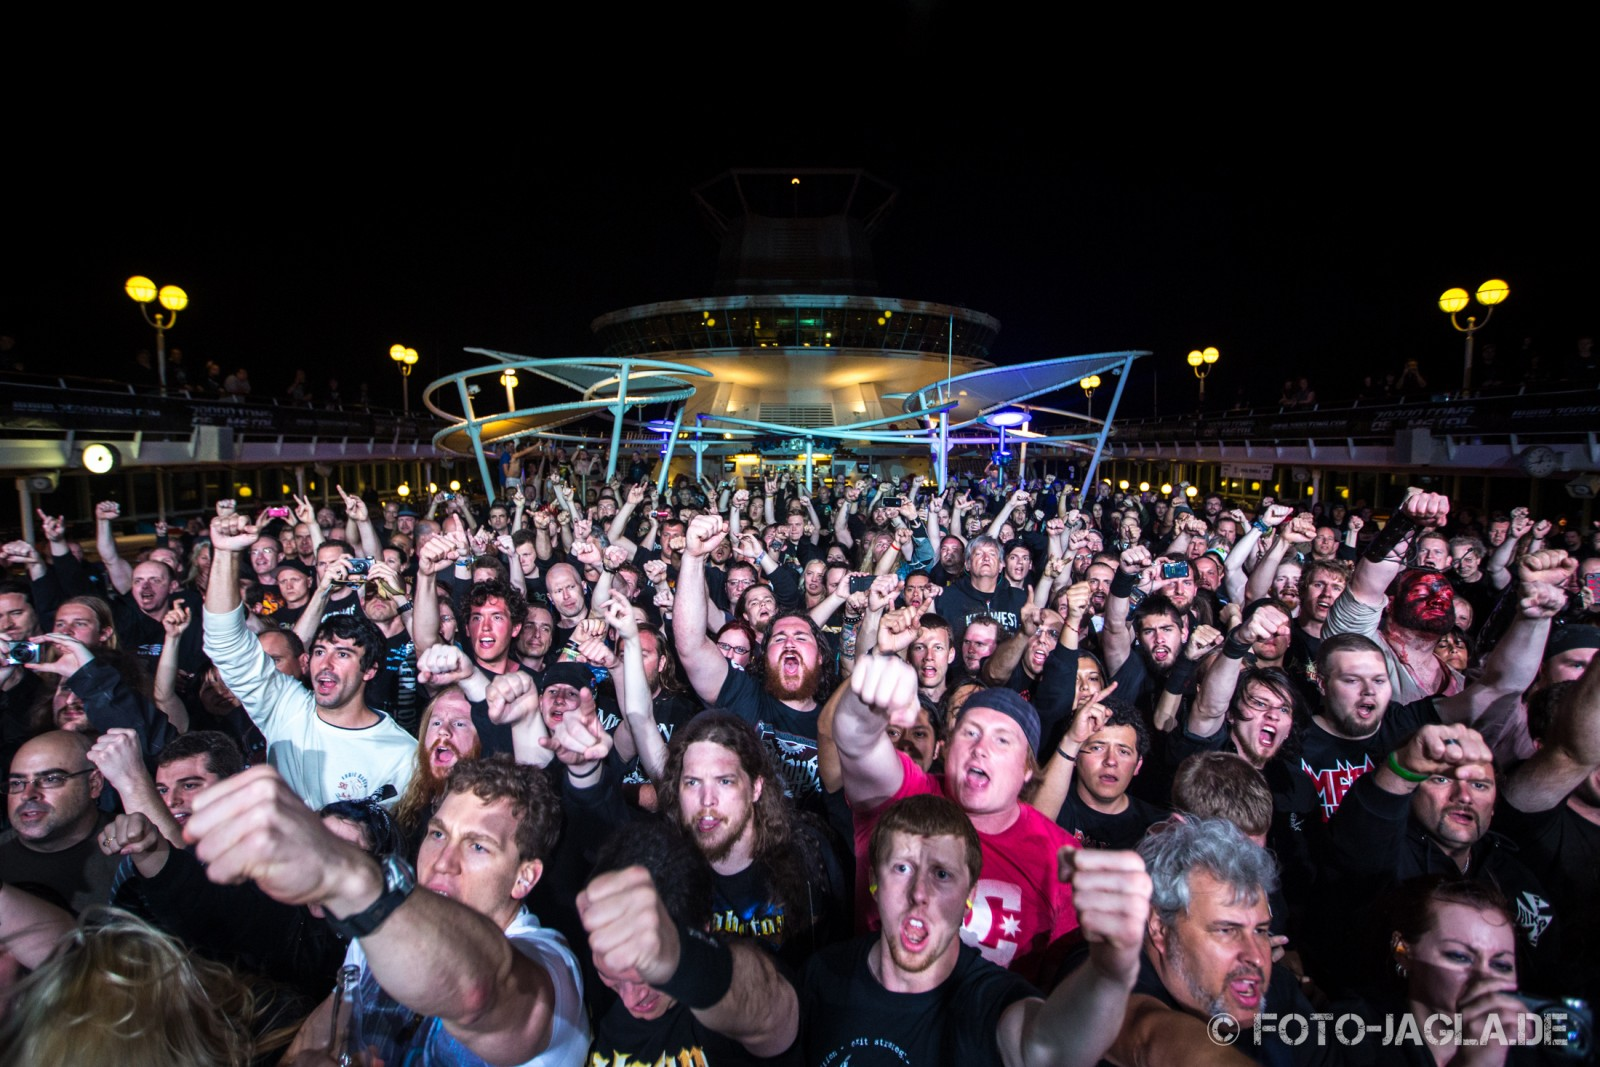 70000 Tons of Metal 2013 ::. Crowd @ Sabaton ::. http://www.foto-jagla.de